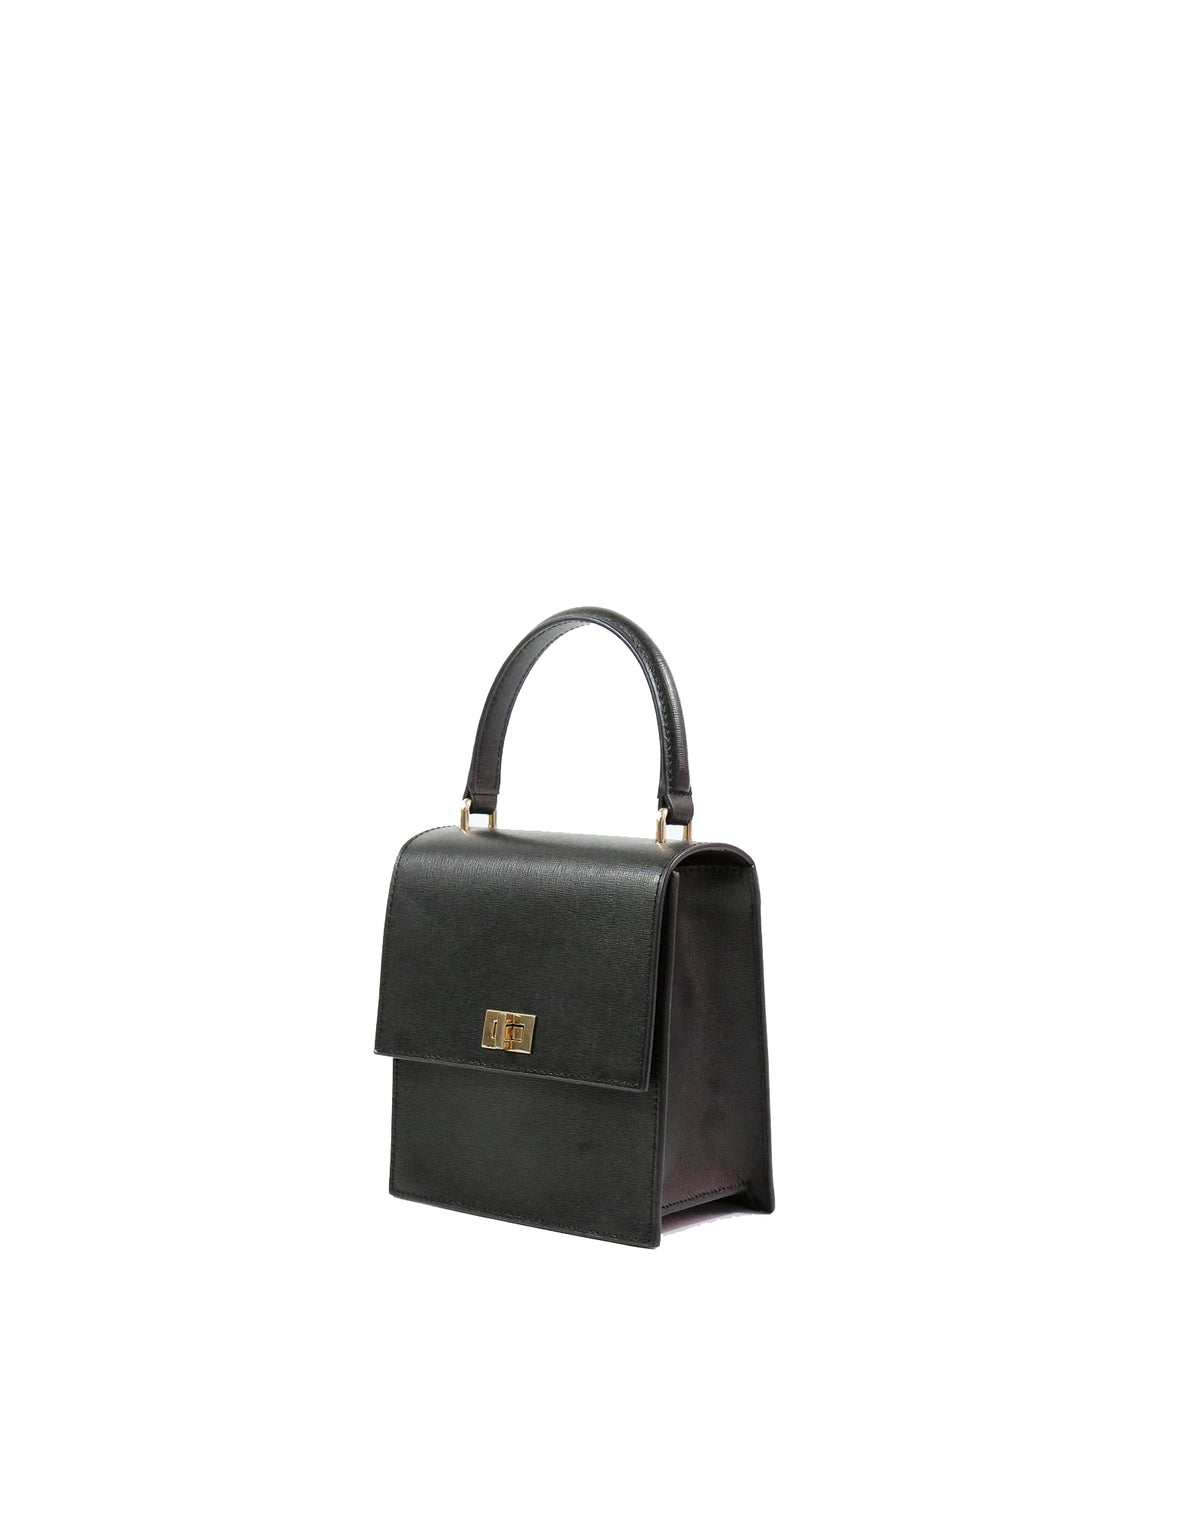 The Mini Lady Bag